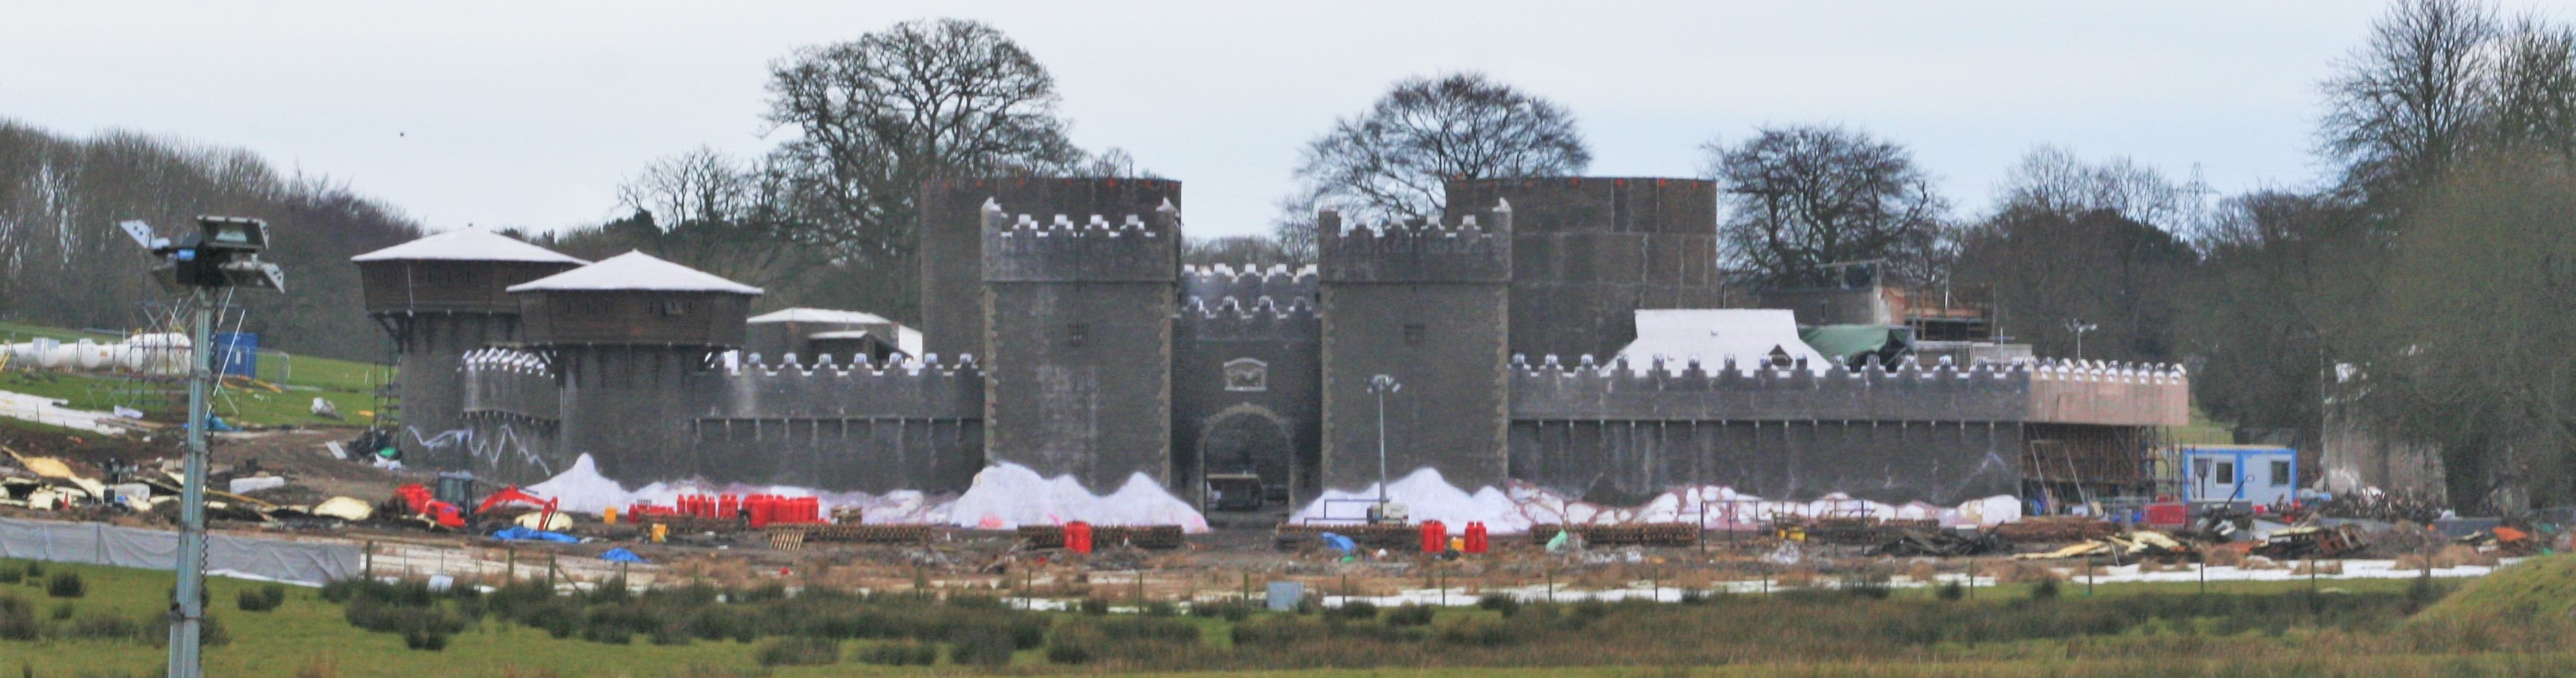 We reported on the much-expanded Winterfell set during filming